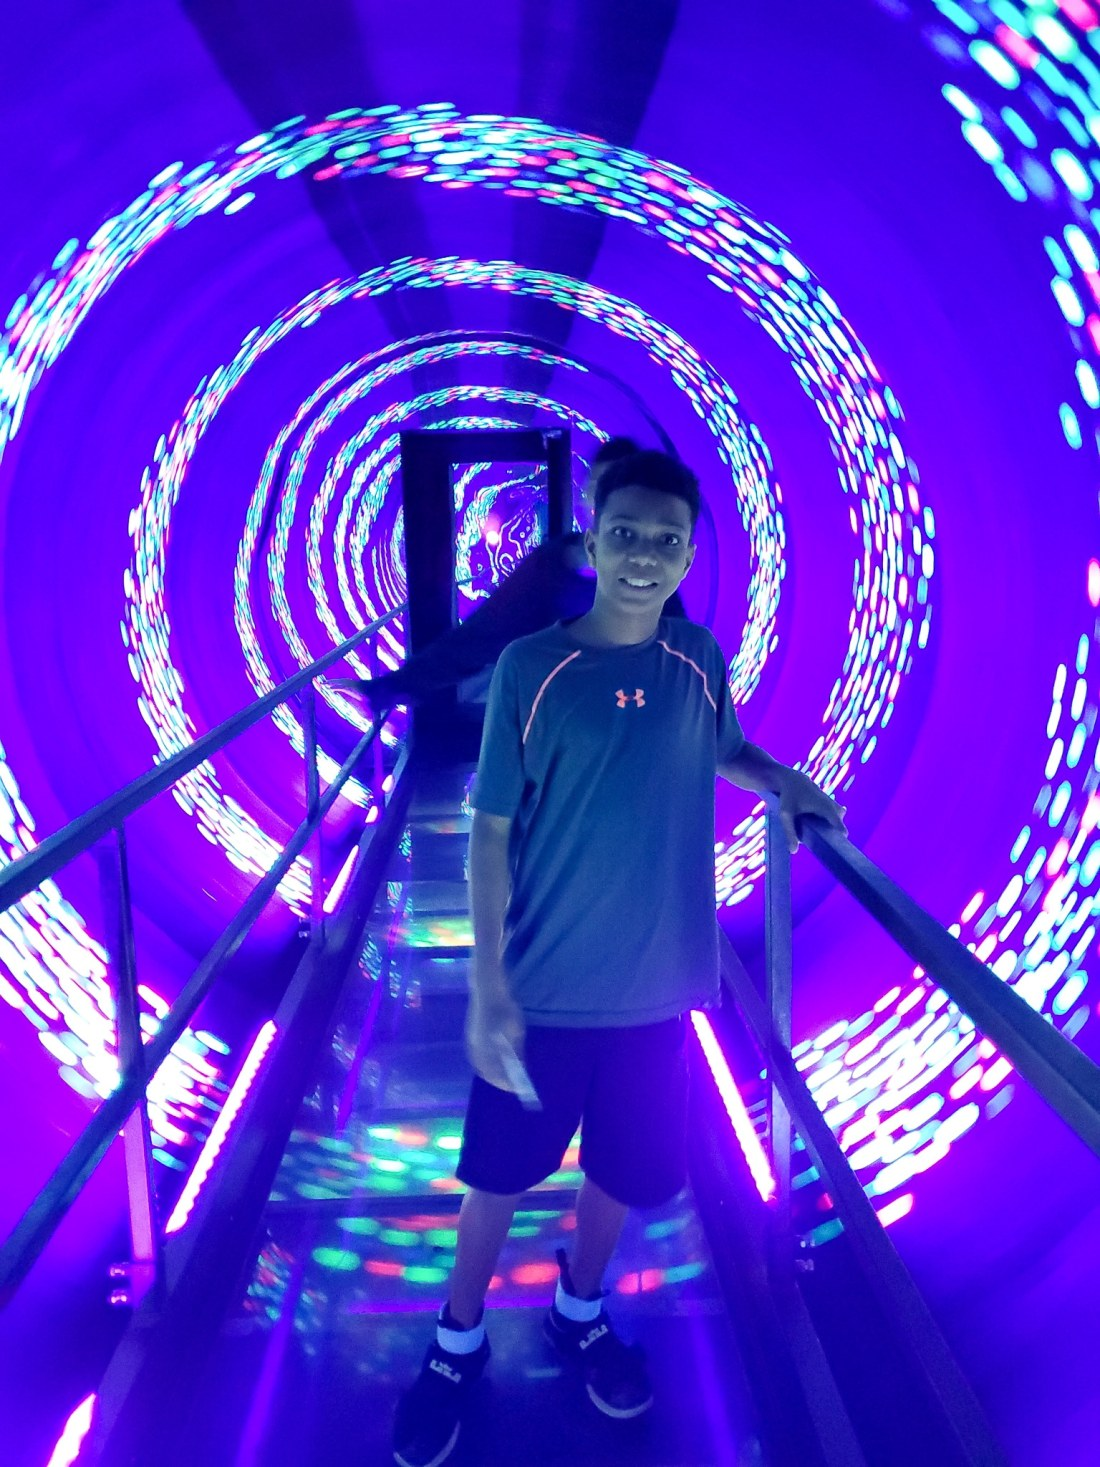 """WonderWorks Light Tunnel. One of the topthings to do in Pigeon Forge, WonderWorks Indoor Amusement park, is one of the bestPigeon Forge Attractions. With over 35,000 square feet of """"edu-tainment,"""" WonderWorks is an amusement park for the mind. Read our full review on the blog."""